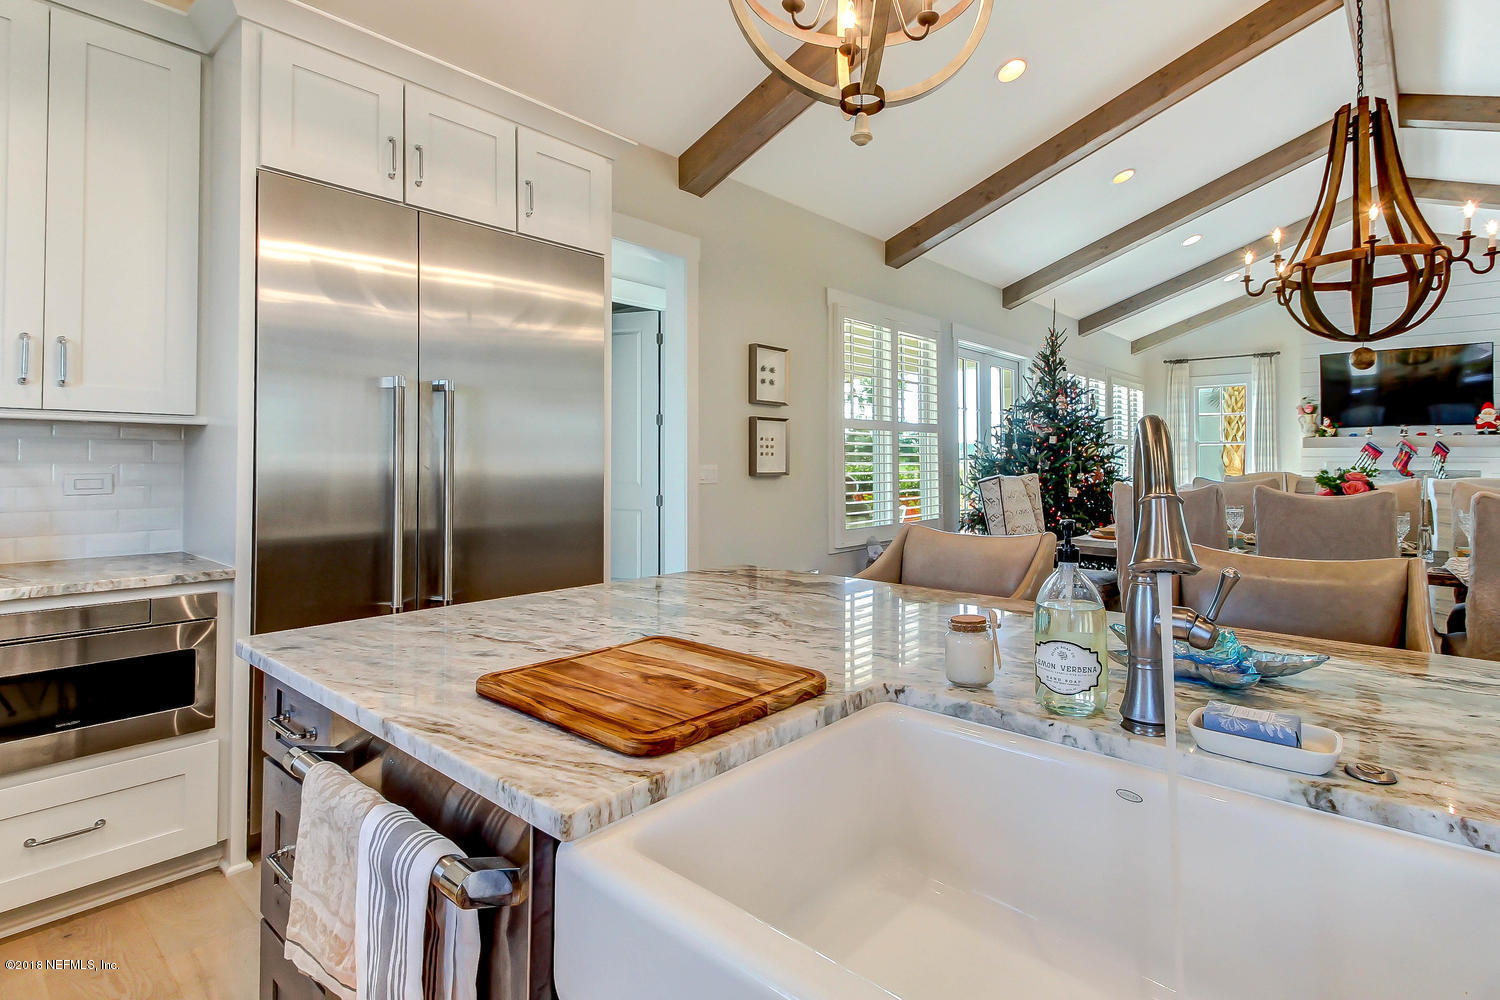 137 GRAND PALM, PONTE VEDRA BEACH, FLORIDA 32082, 5 Bedrooms Bedrooms, ,5 BathroomsBathrooms,Residential - single family,For sale,GRAND PALM,928355